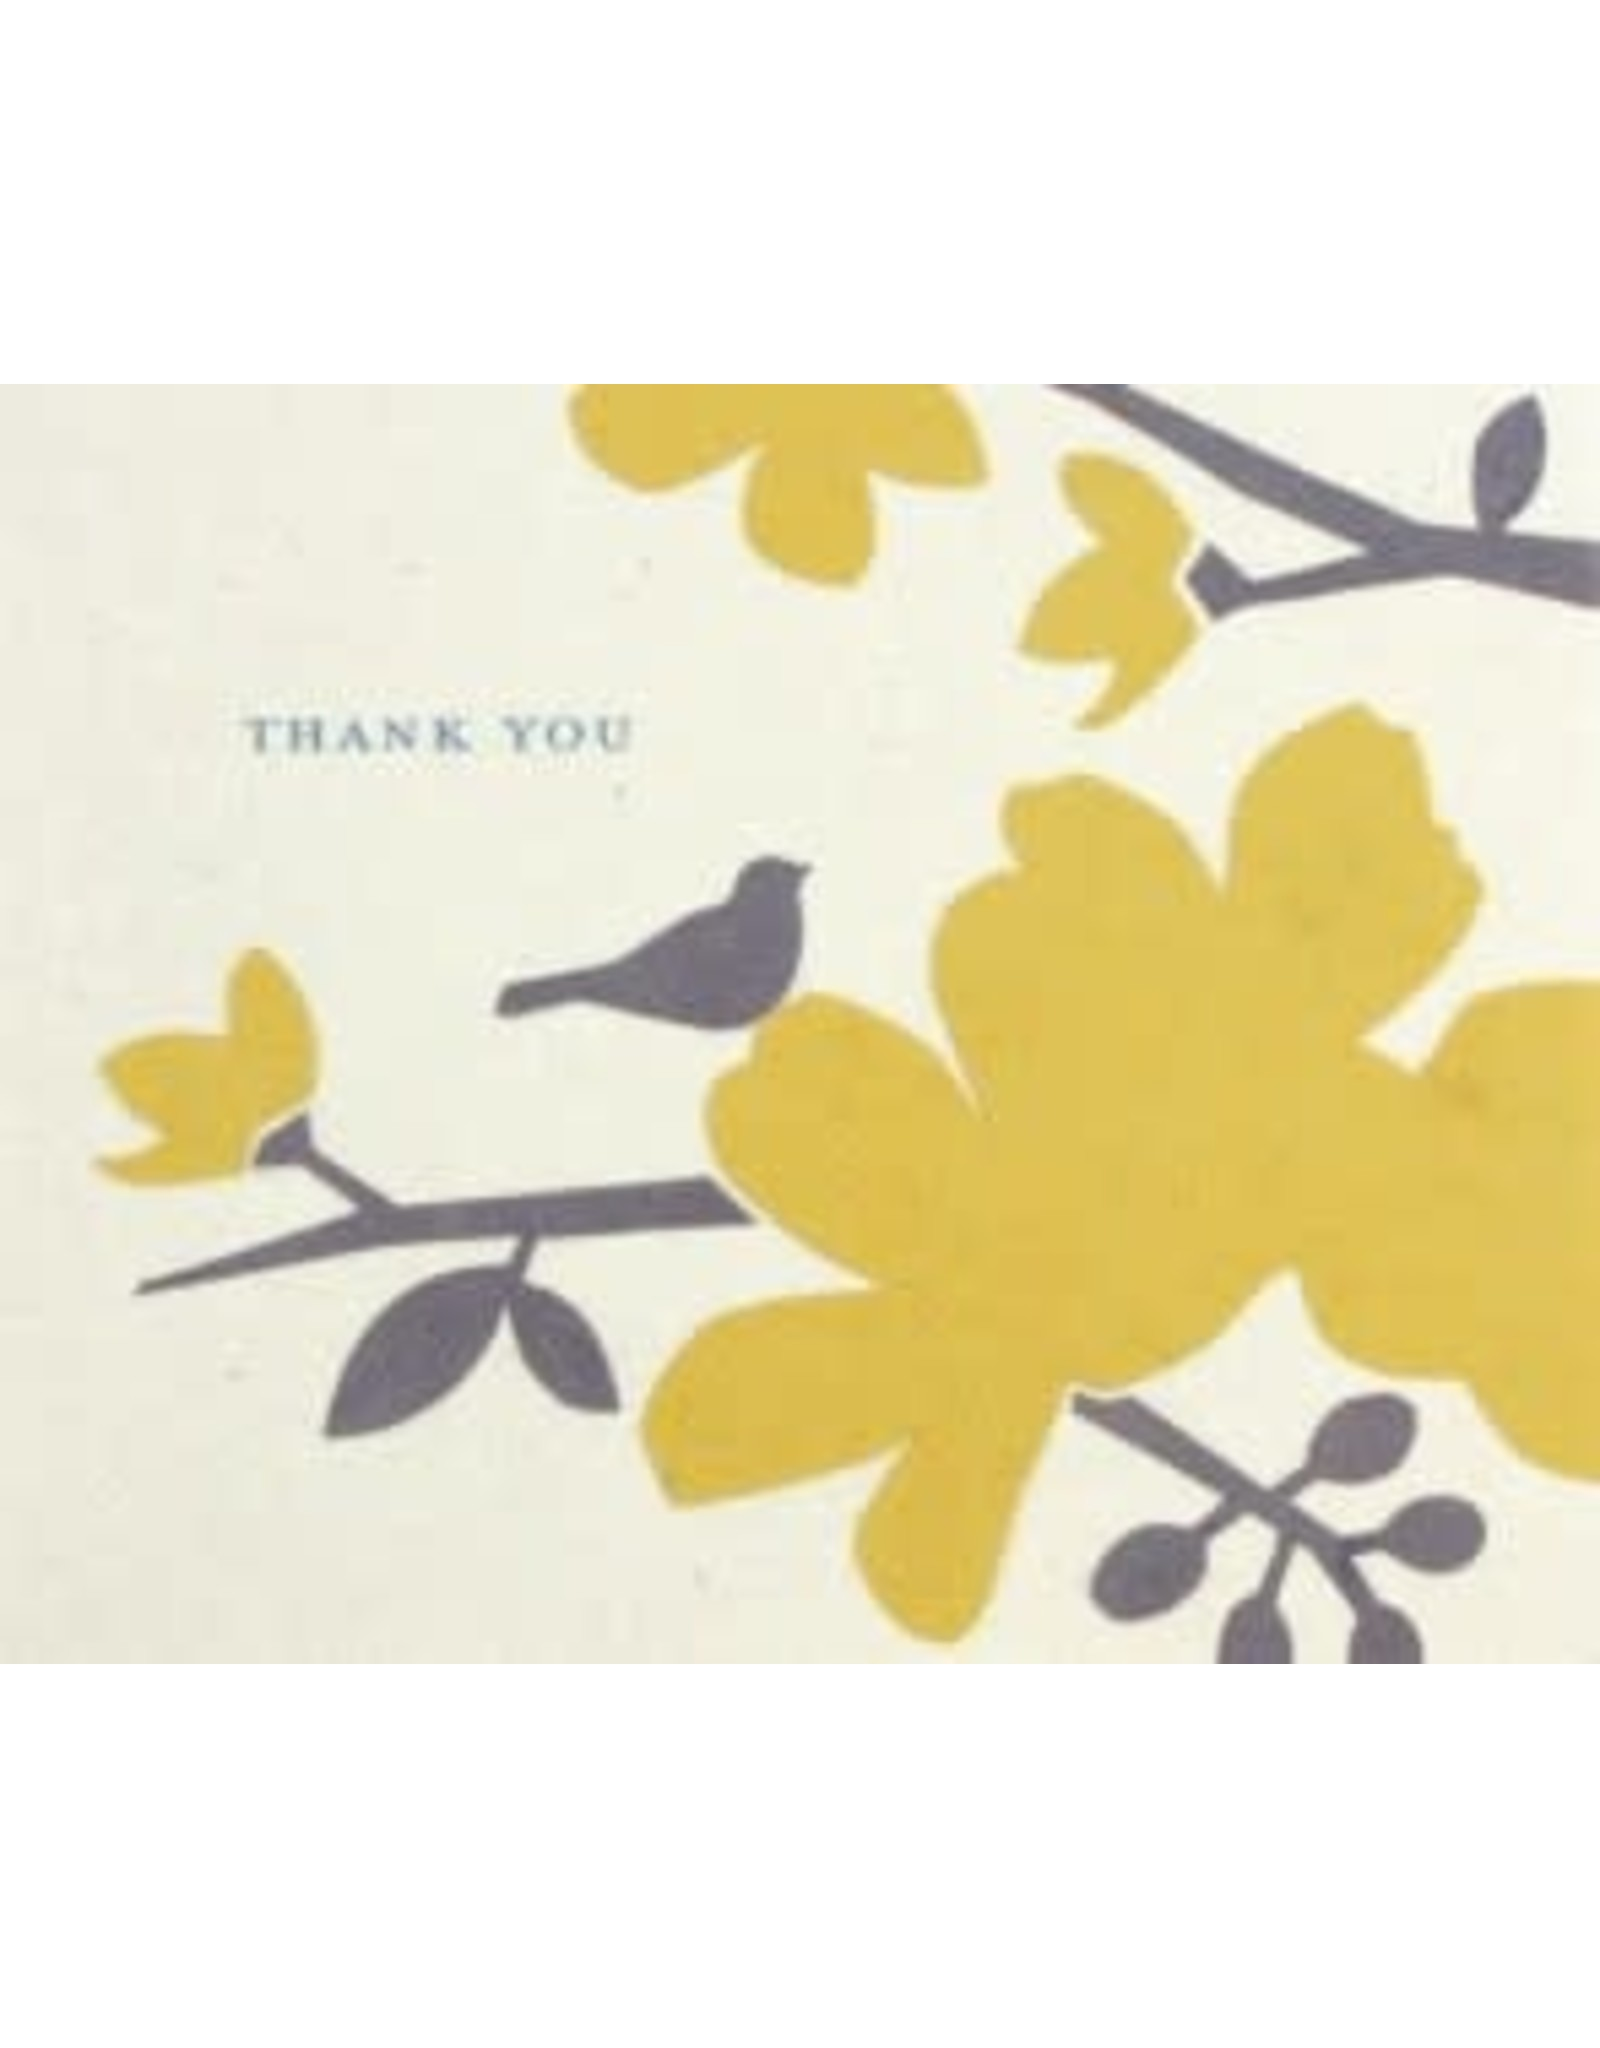 Blooming Thank You Greeting Card